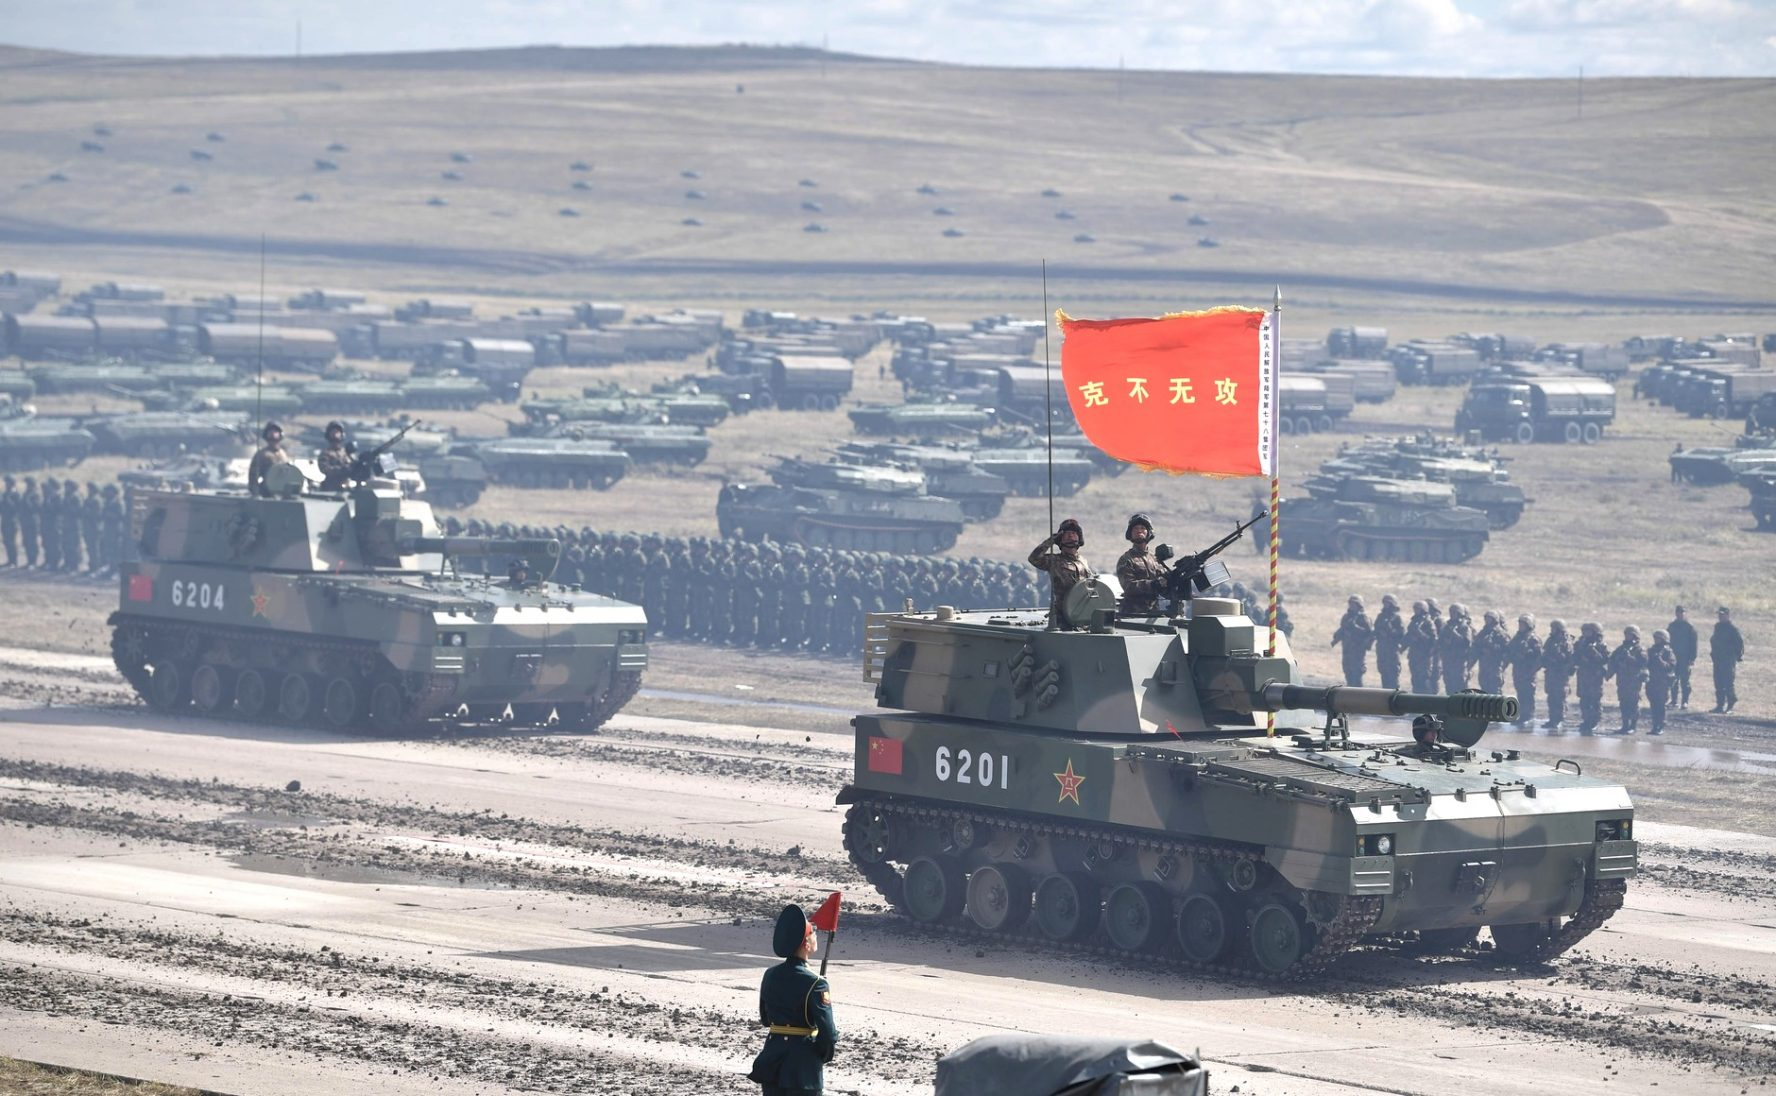 Chinese tanks. Photo by The President of Russia. Source: https://bit.ly/2rVpqGH